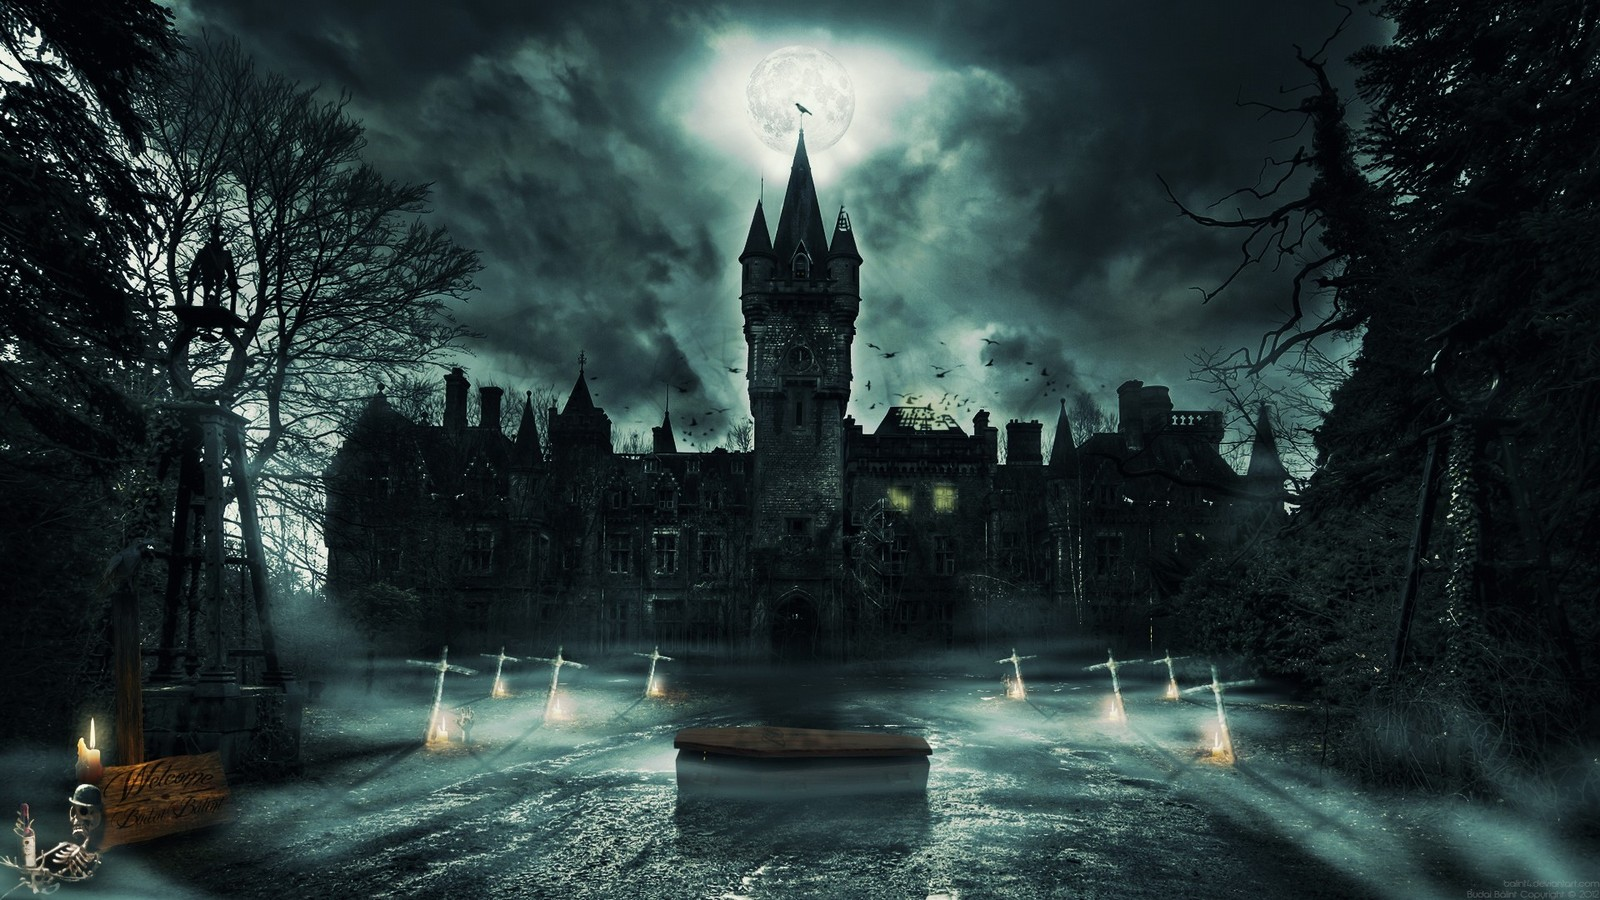 With Cloud HD Wallpaper Haunted HD Wallpaper 3D Horror HQ Wallpaper 1600x900